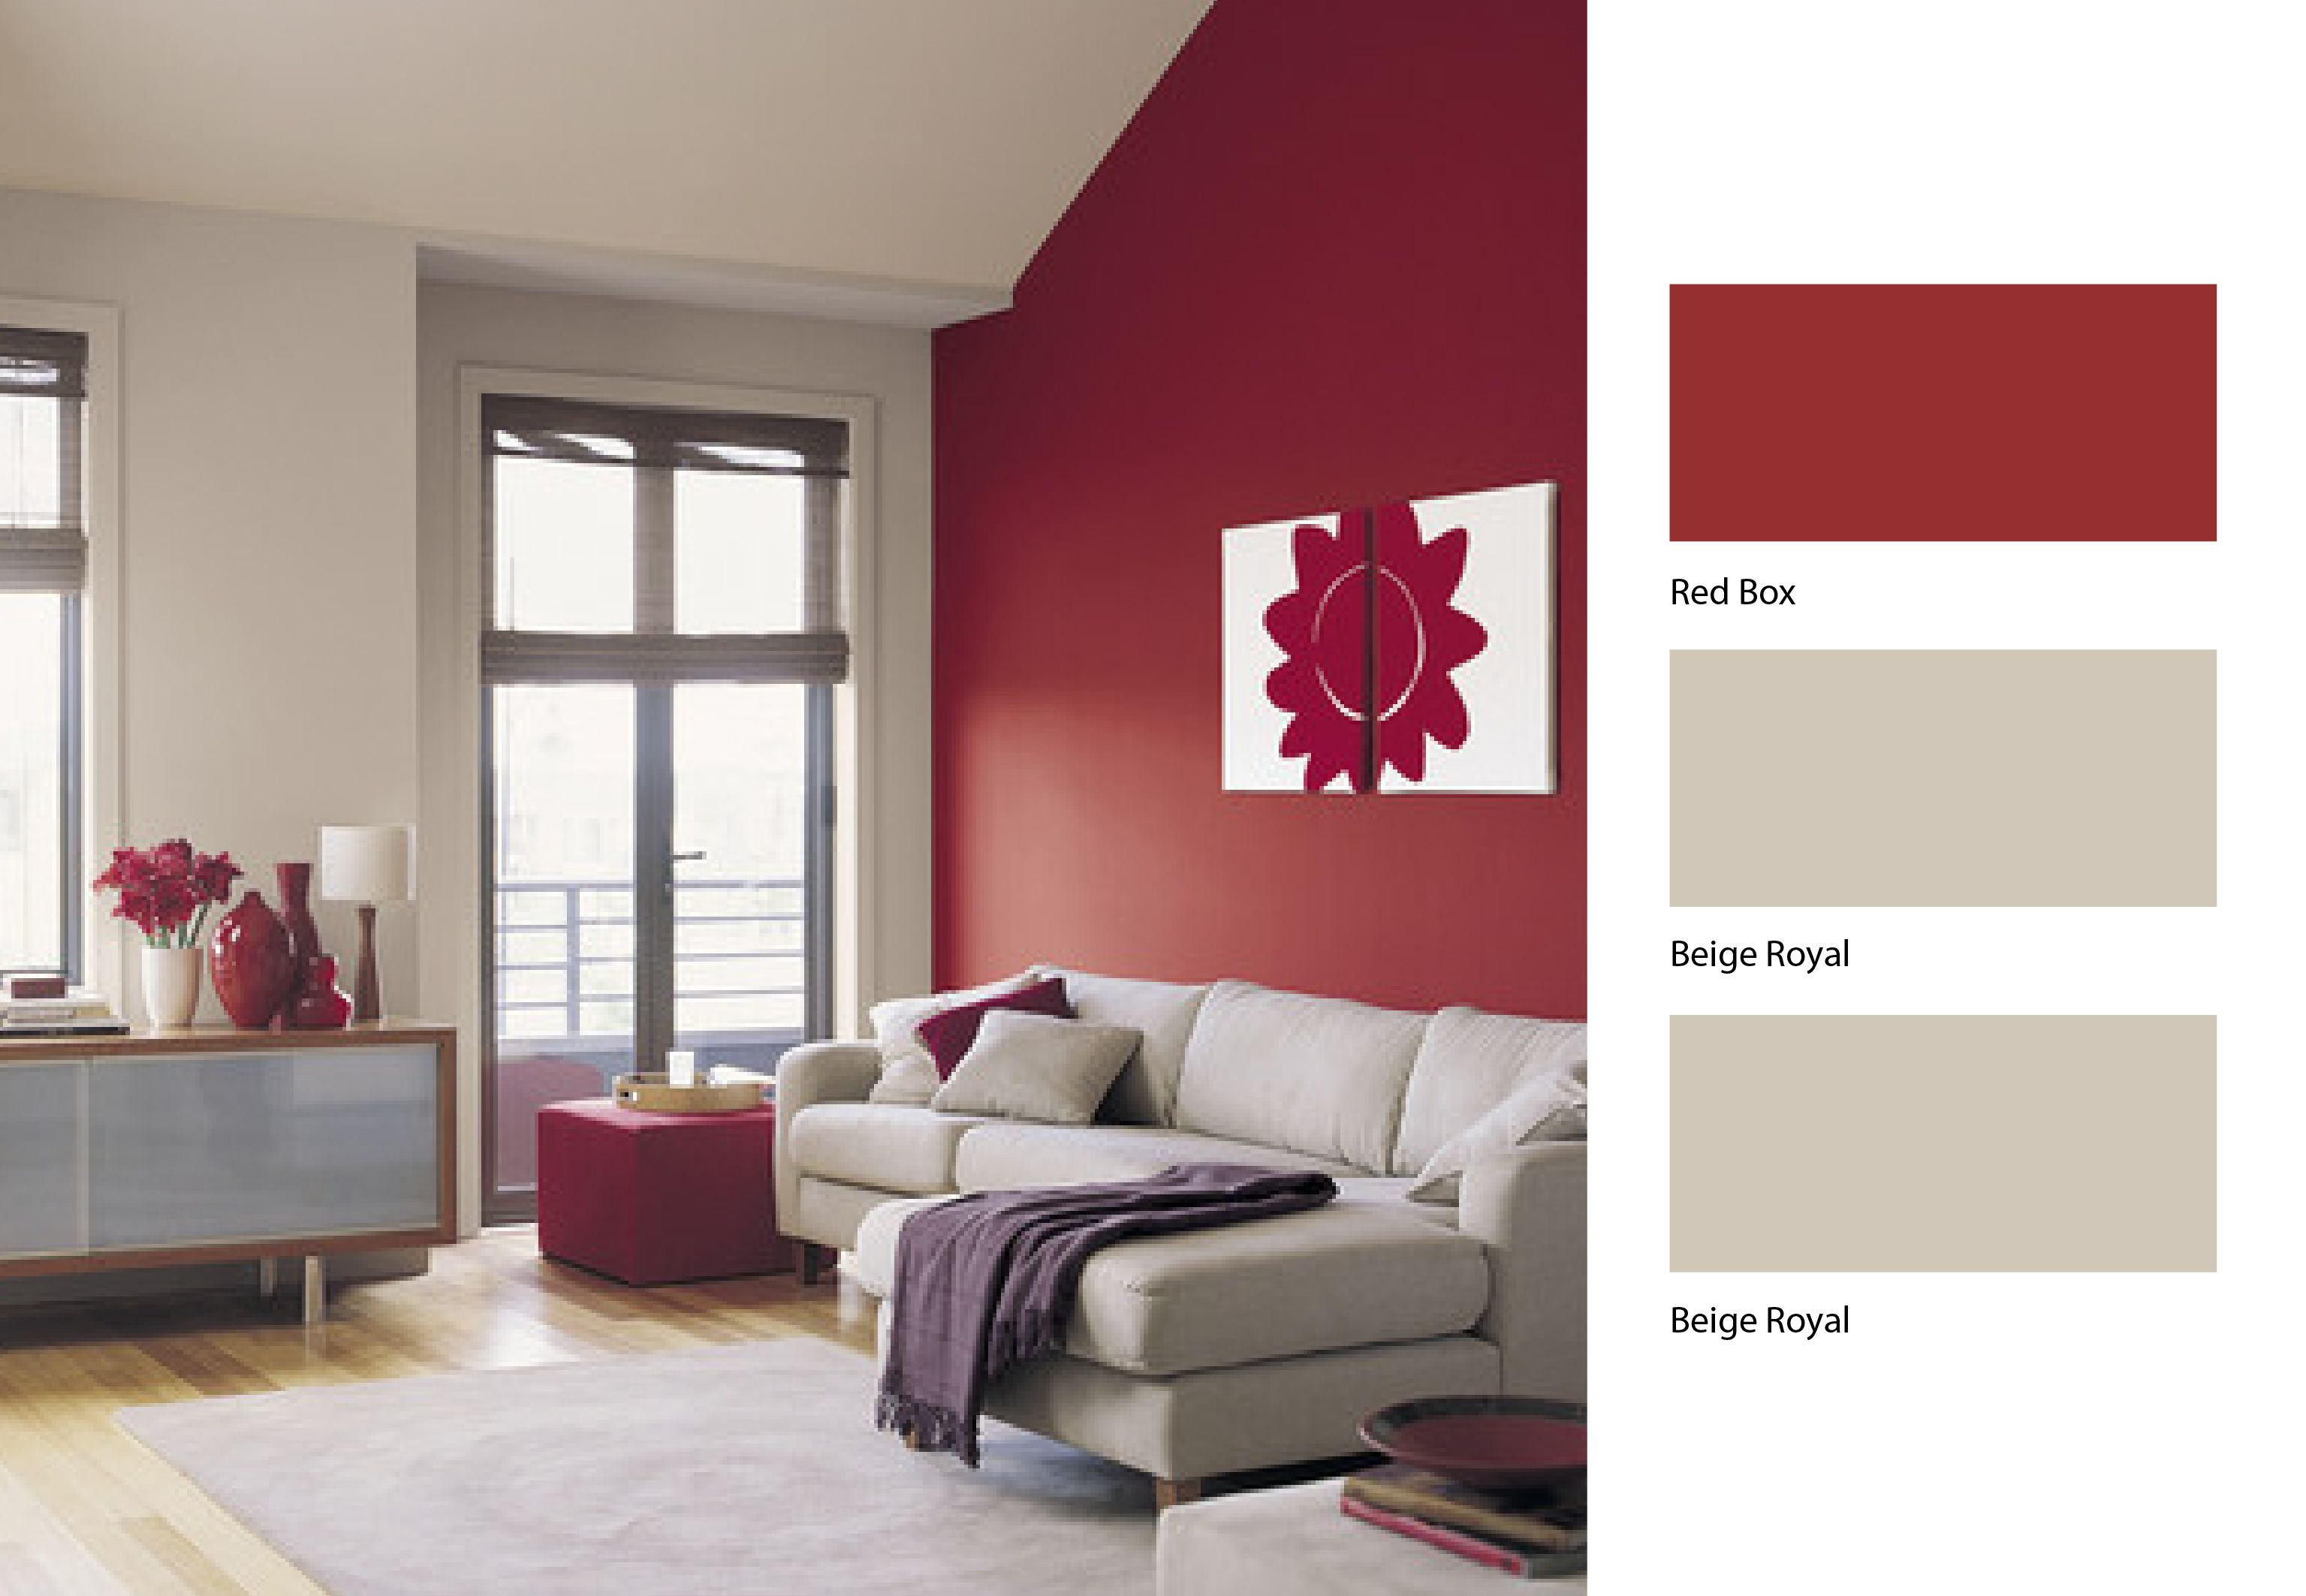 Give your living room a revamp with this beige and red Room wall colour combination